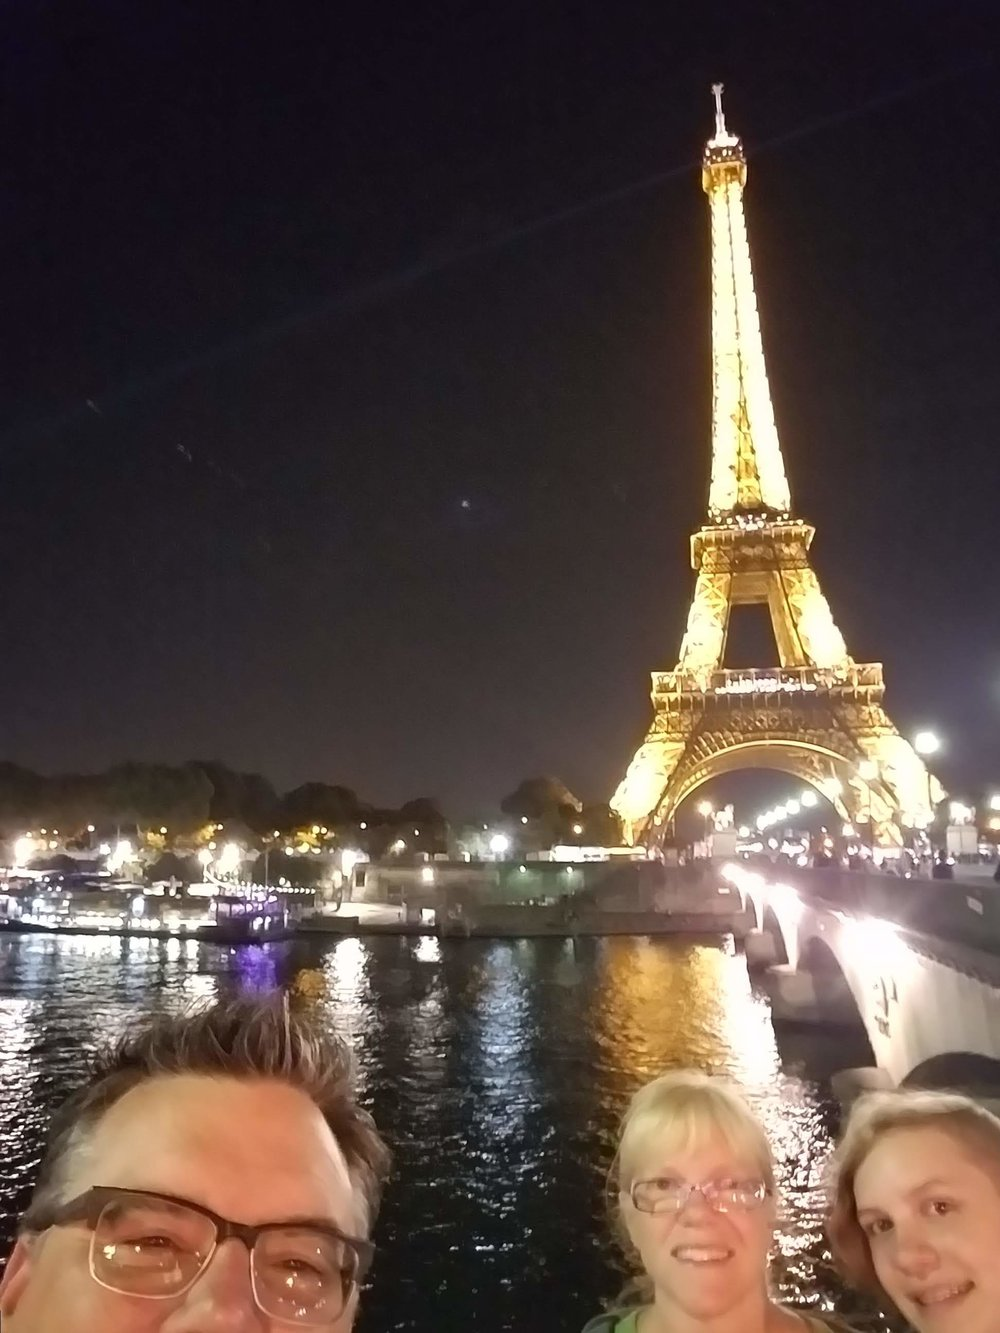 And no unplanned (but welcome) overnight in Paris would be complete without a walk to one of the world's most dramatic monuments, the Eiffel Tower.